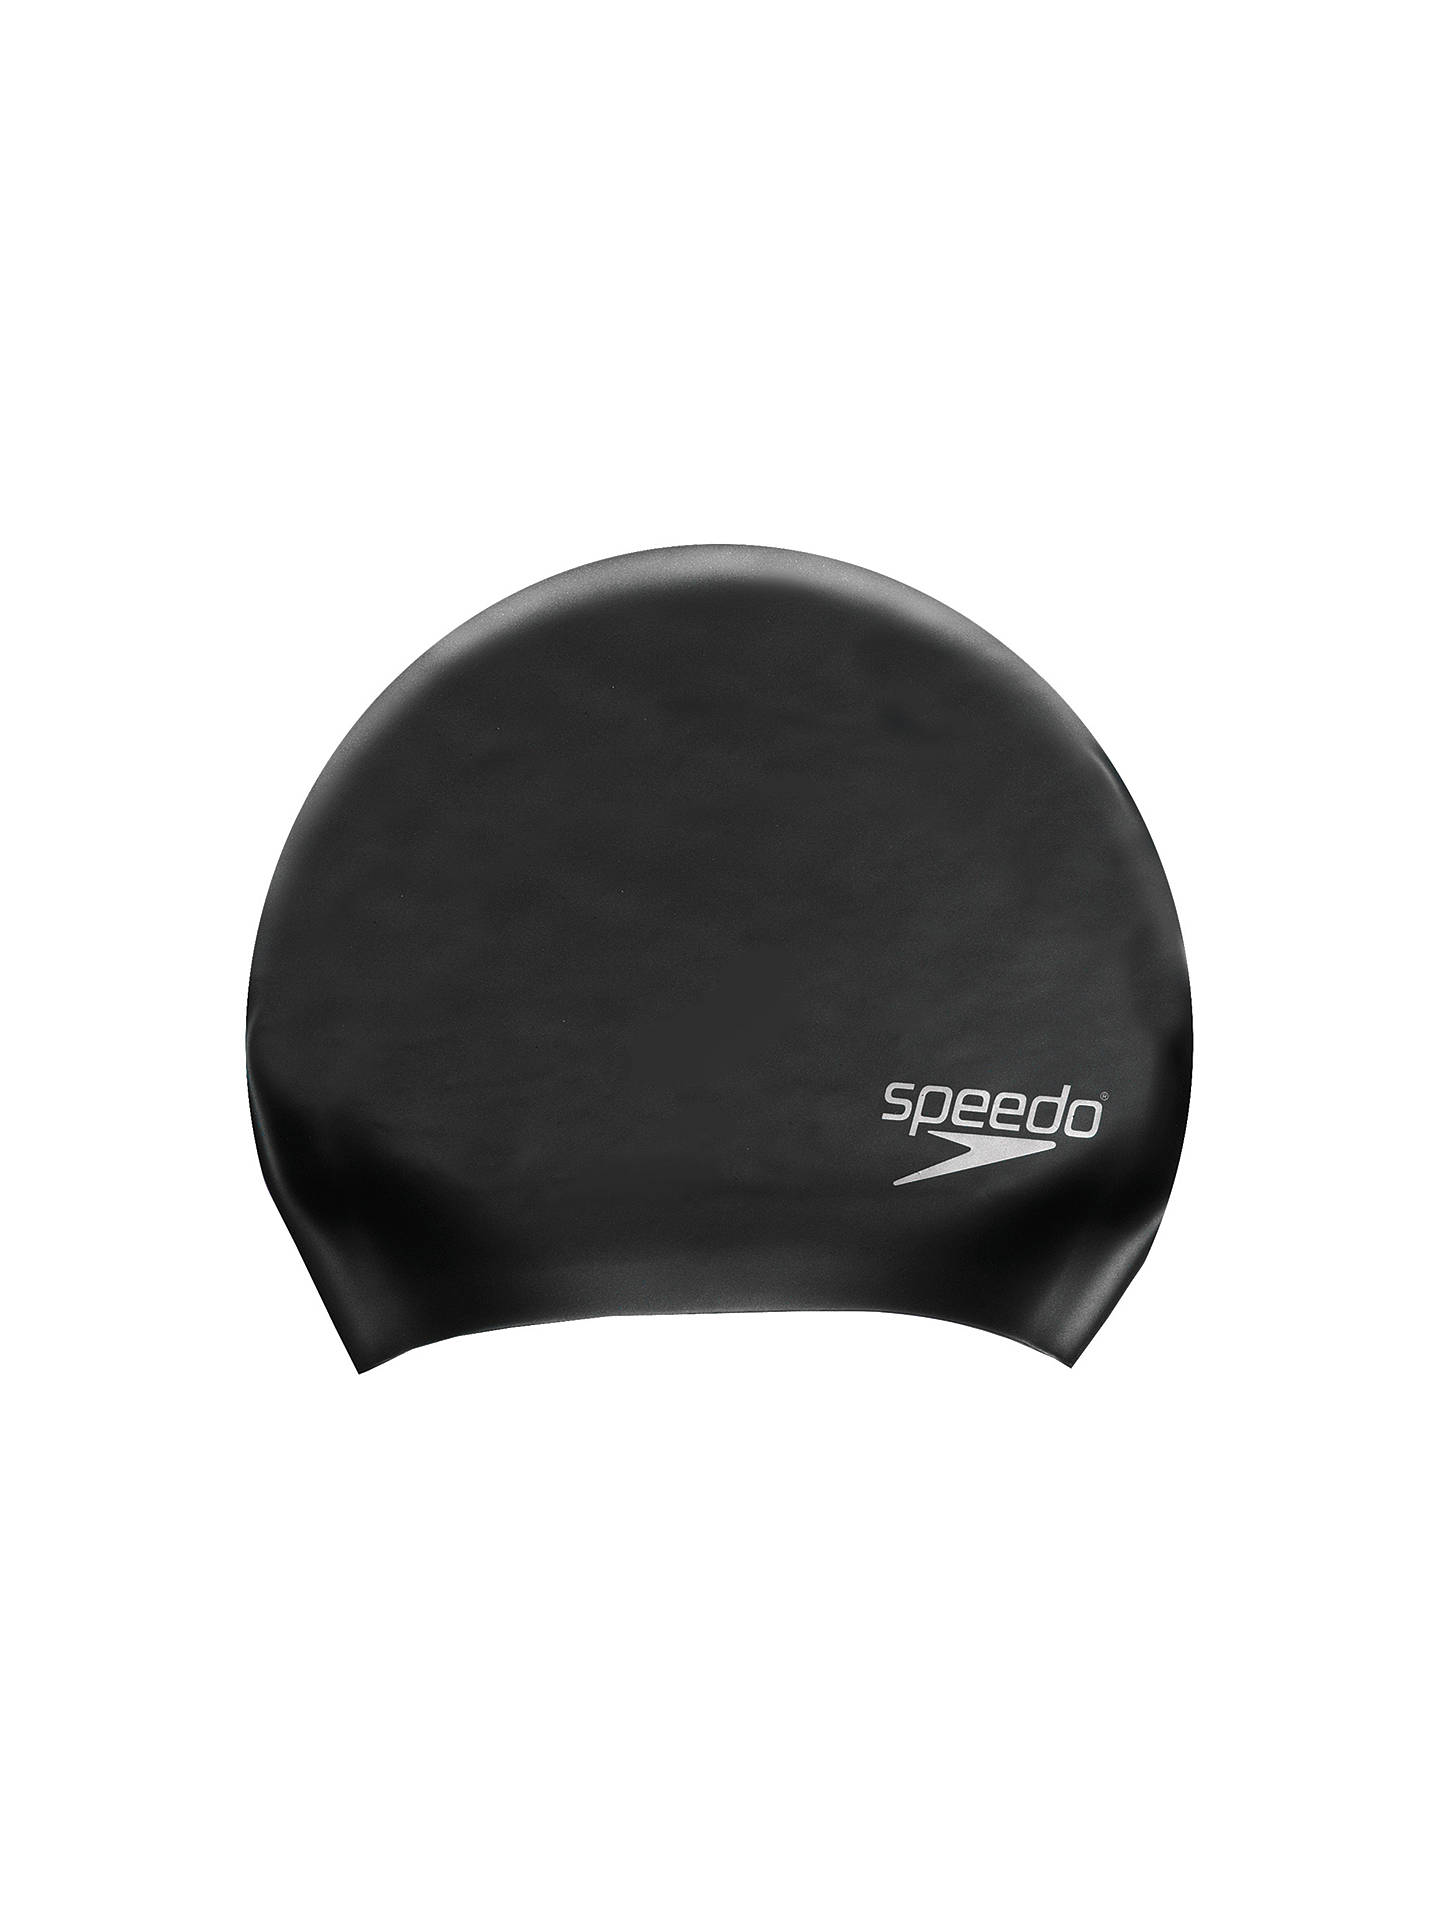 Buy Speedo Long Hair Swimming Cap, Black Online at johnlewis.com